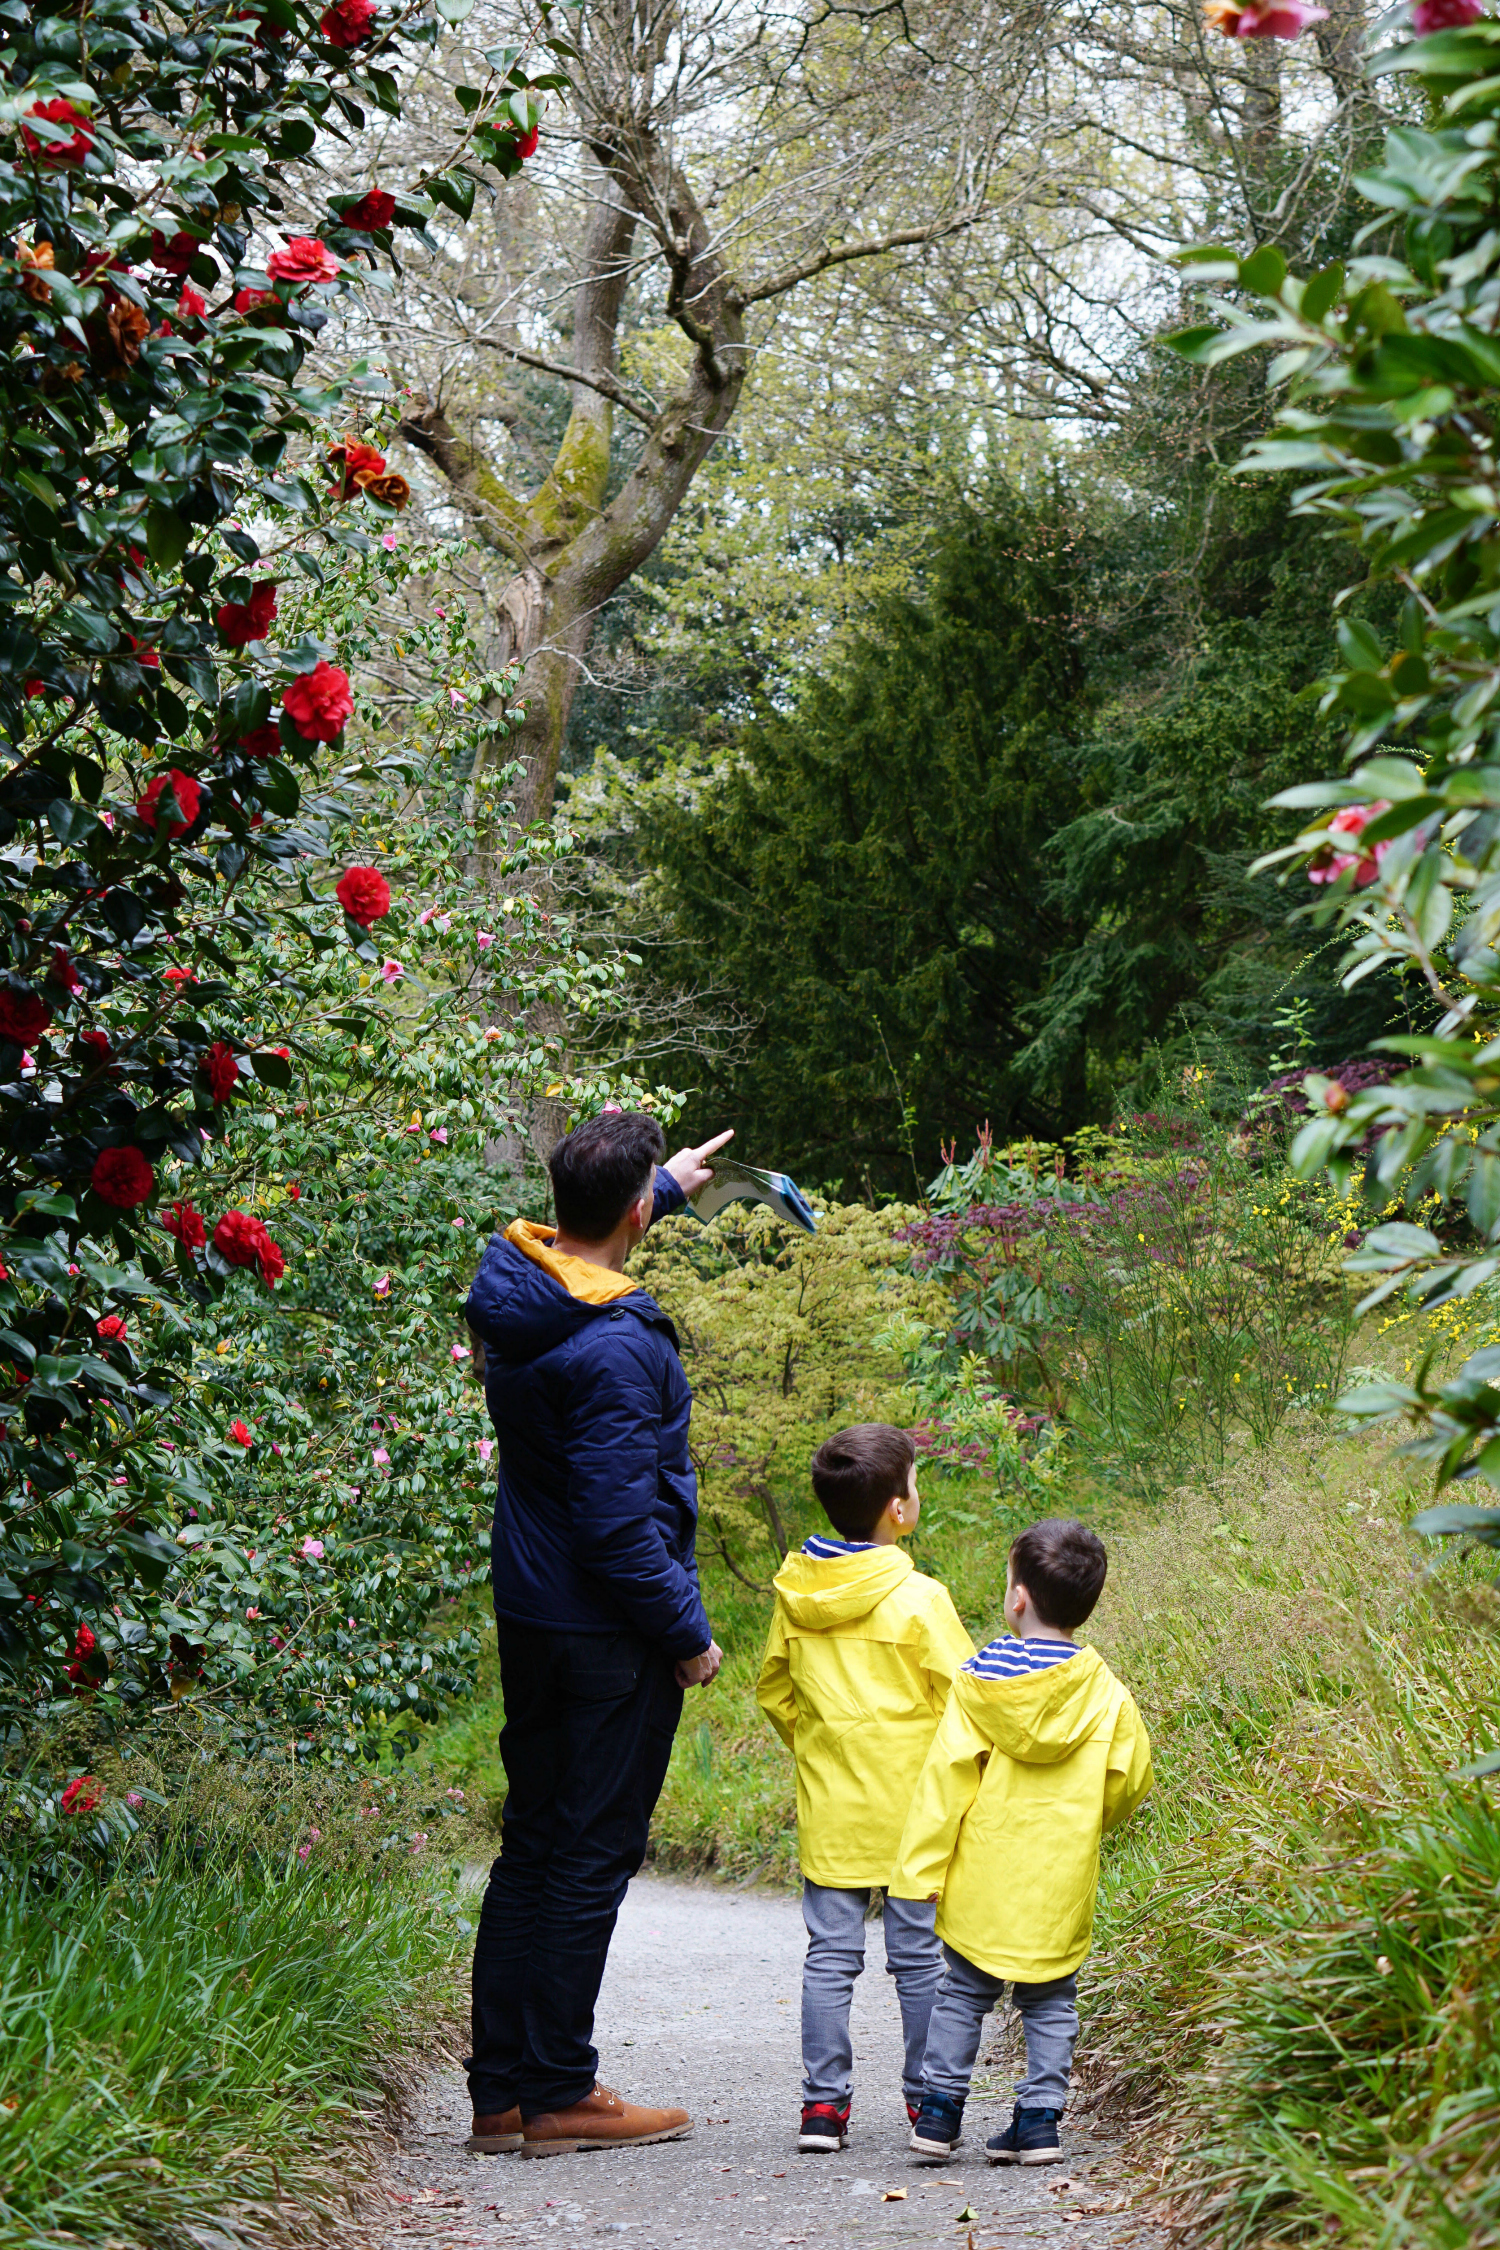 Bug and bloom hunting at Bodnant Garden - it's the simple things that make us happy